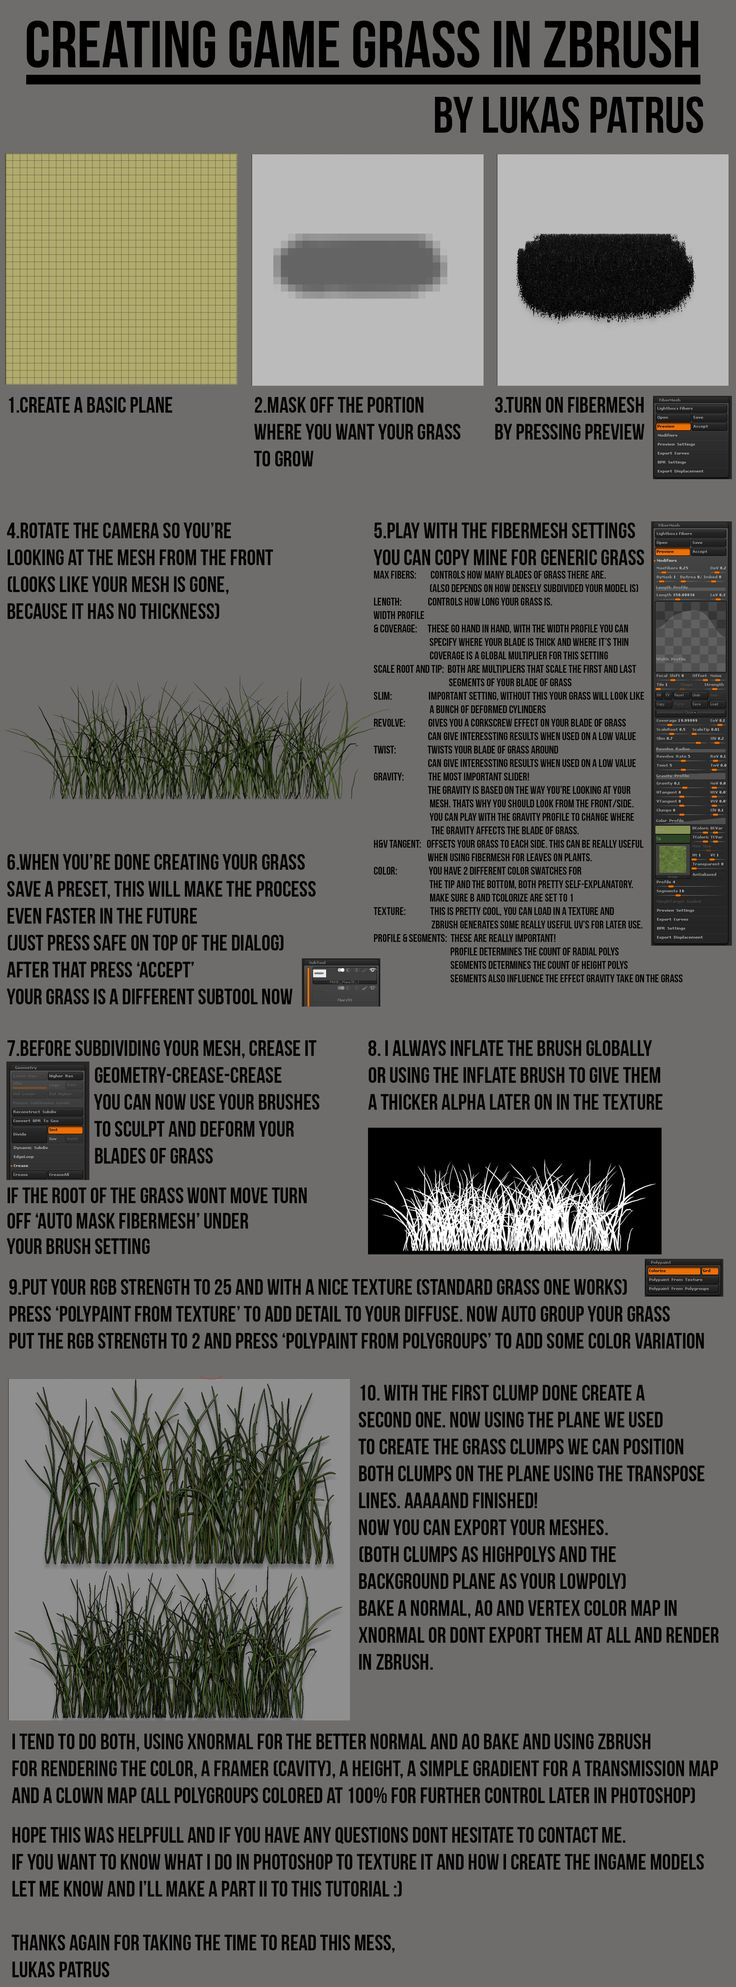 ArtStation - Creating Game Grass in Zbrush, Lukas Patrus